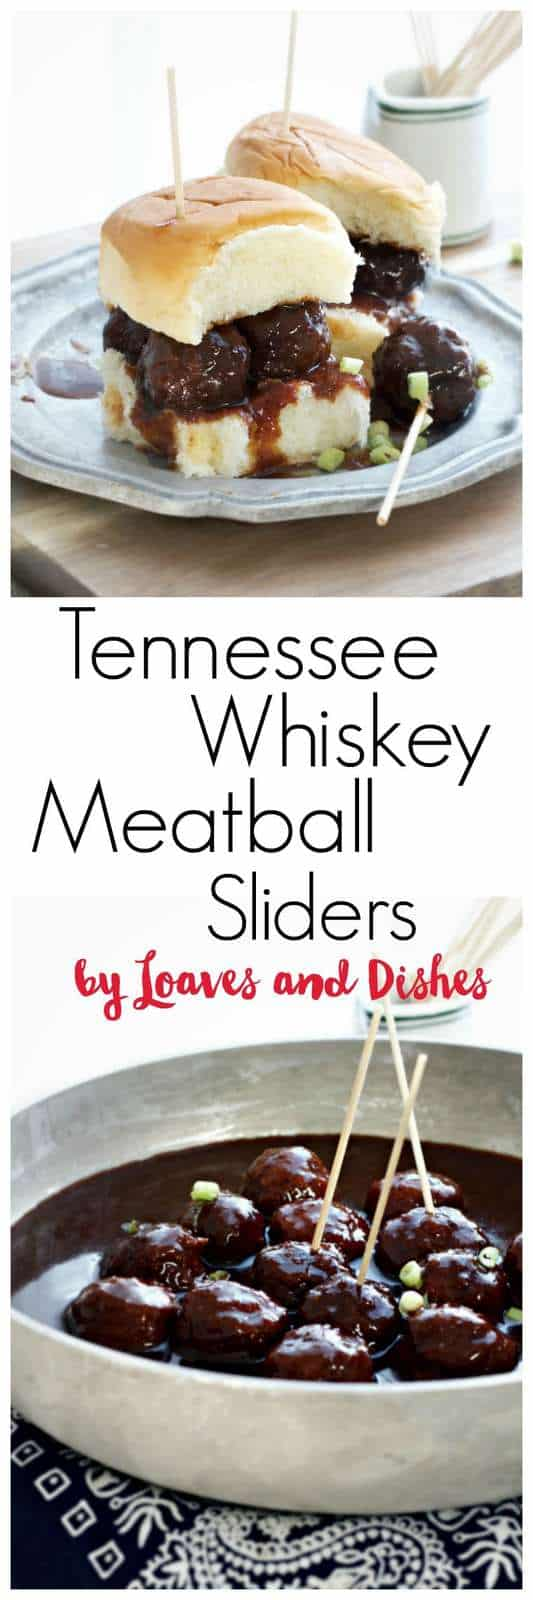 Simple spicy crockpot slowcooker adulterated meatballs that are perfect for a Super Bowl recipe or party! Serve as sliders or simply as delicious meatballs on a toothpick. Favorite Game Day Fun!